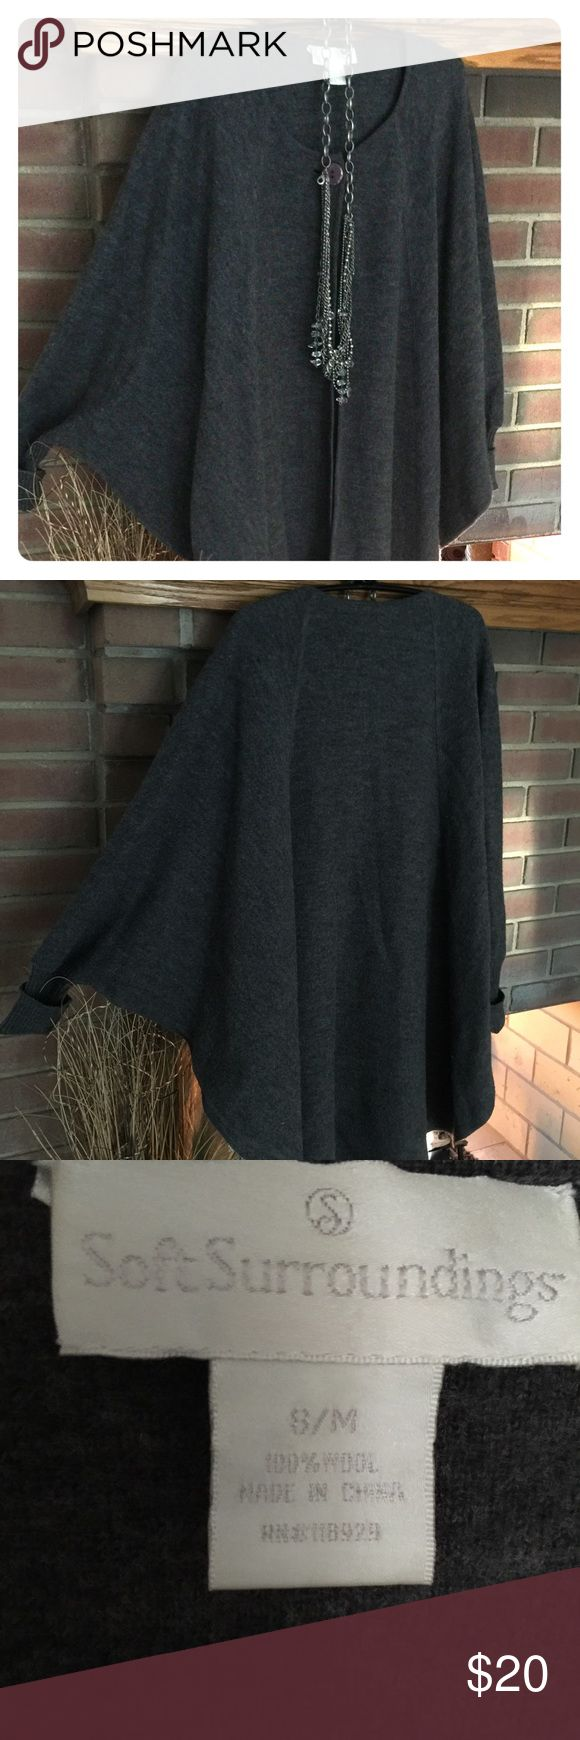 """🎉Moderator Pick🎉Coldwater Creek Sleeved Cape-S/M 100% Wool.  Single button/""""batlike"""" sleeves.  This will definitely keep the chill out.  Dress up or down. Coldwater Creek Jackets & Coats Capes"""